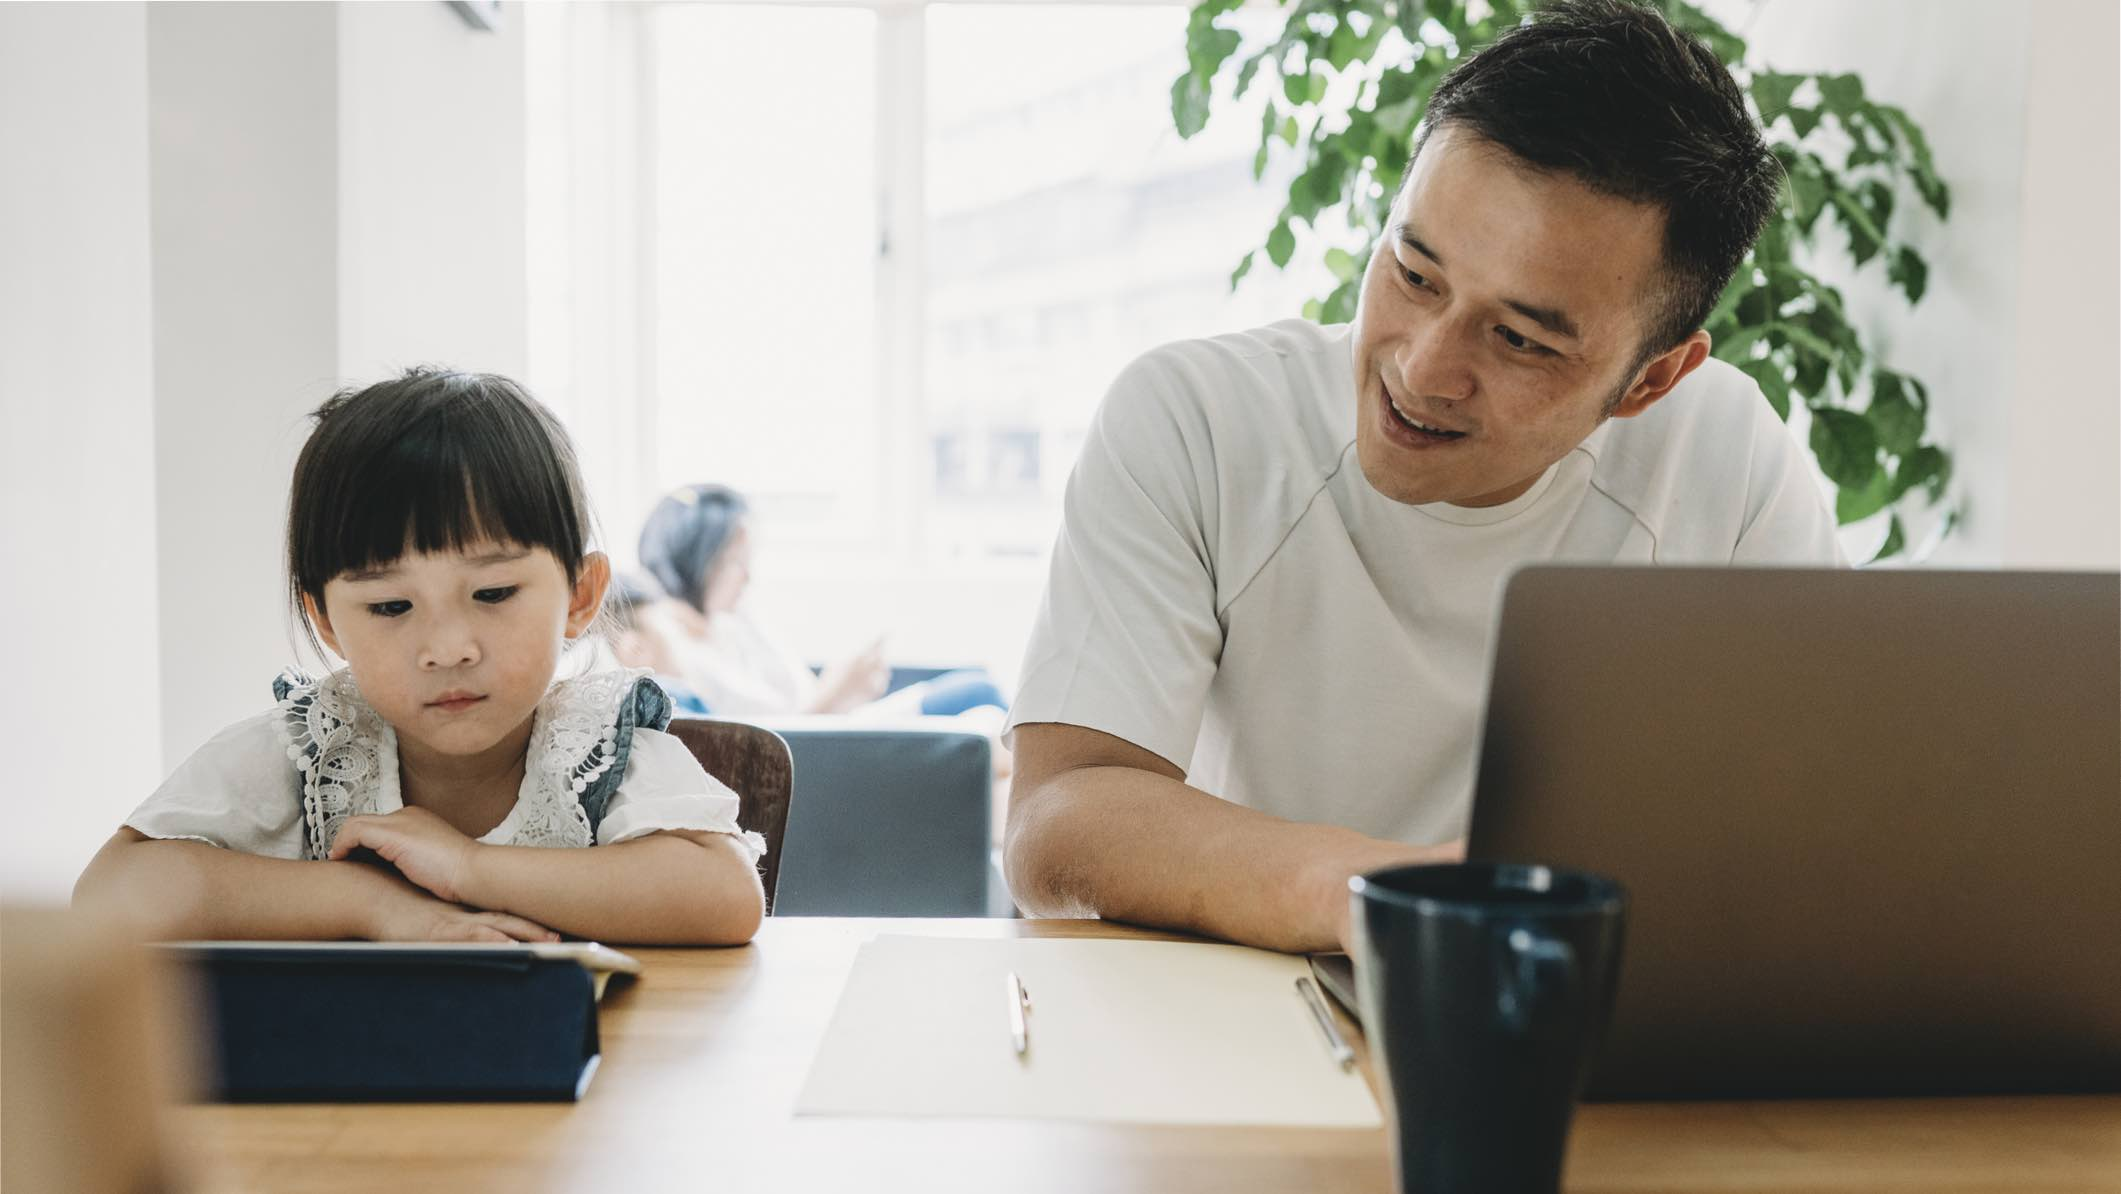 Family sitting at computer considering their future financial choices.